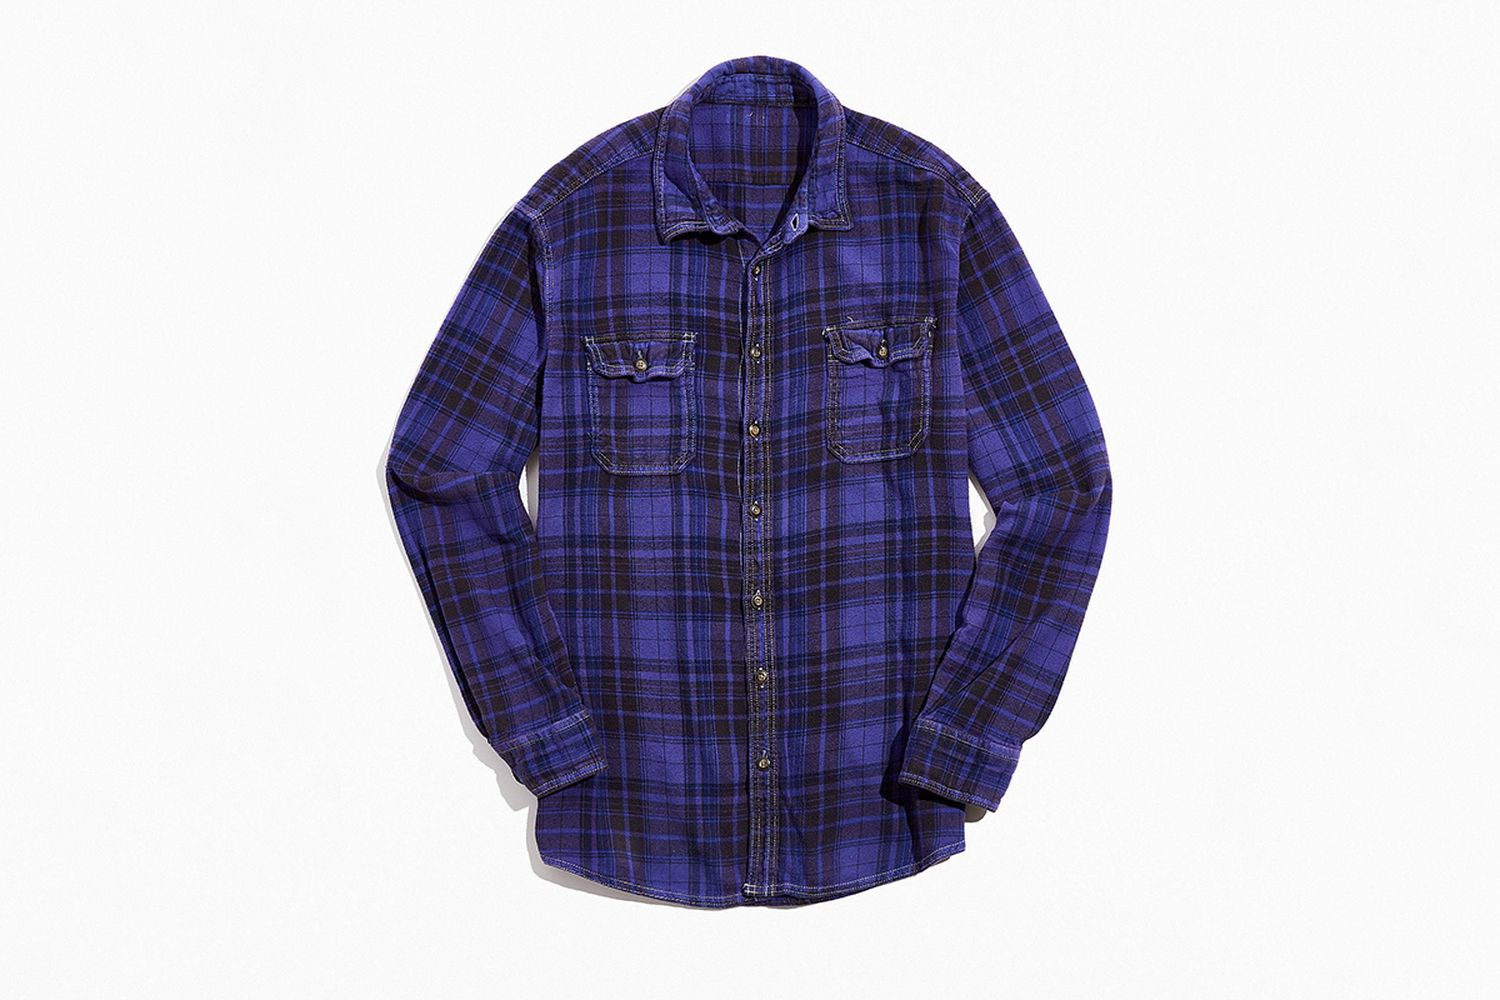 Overdyed Vintage Flannel Shirt